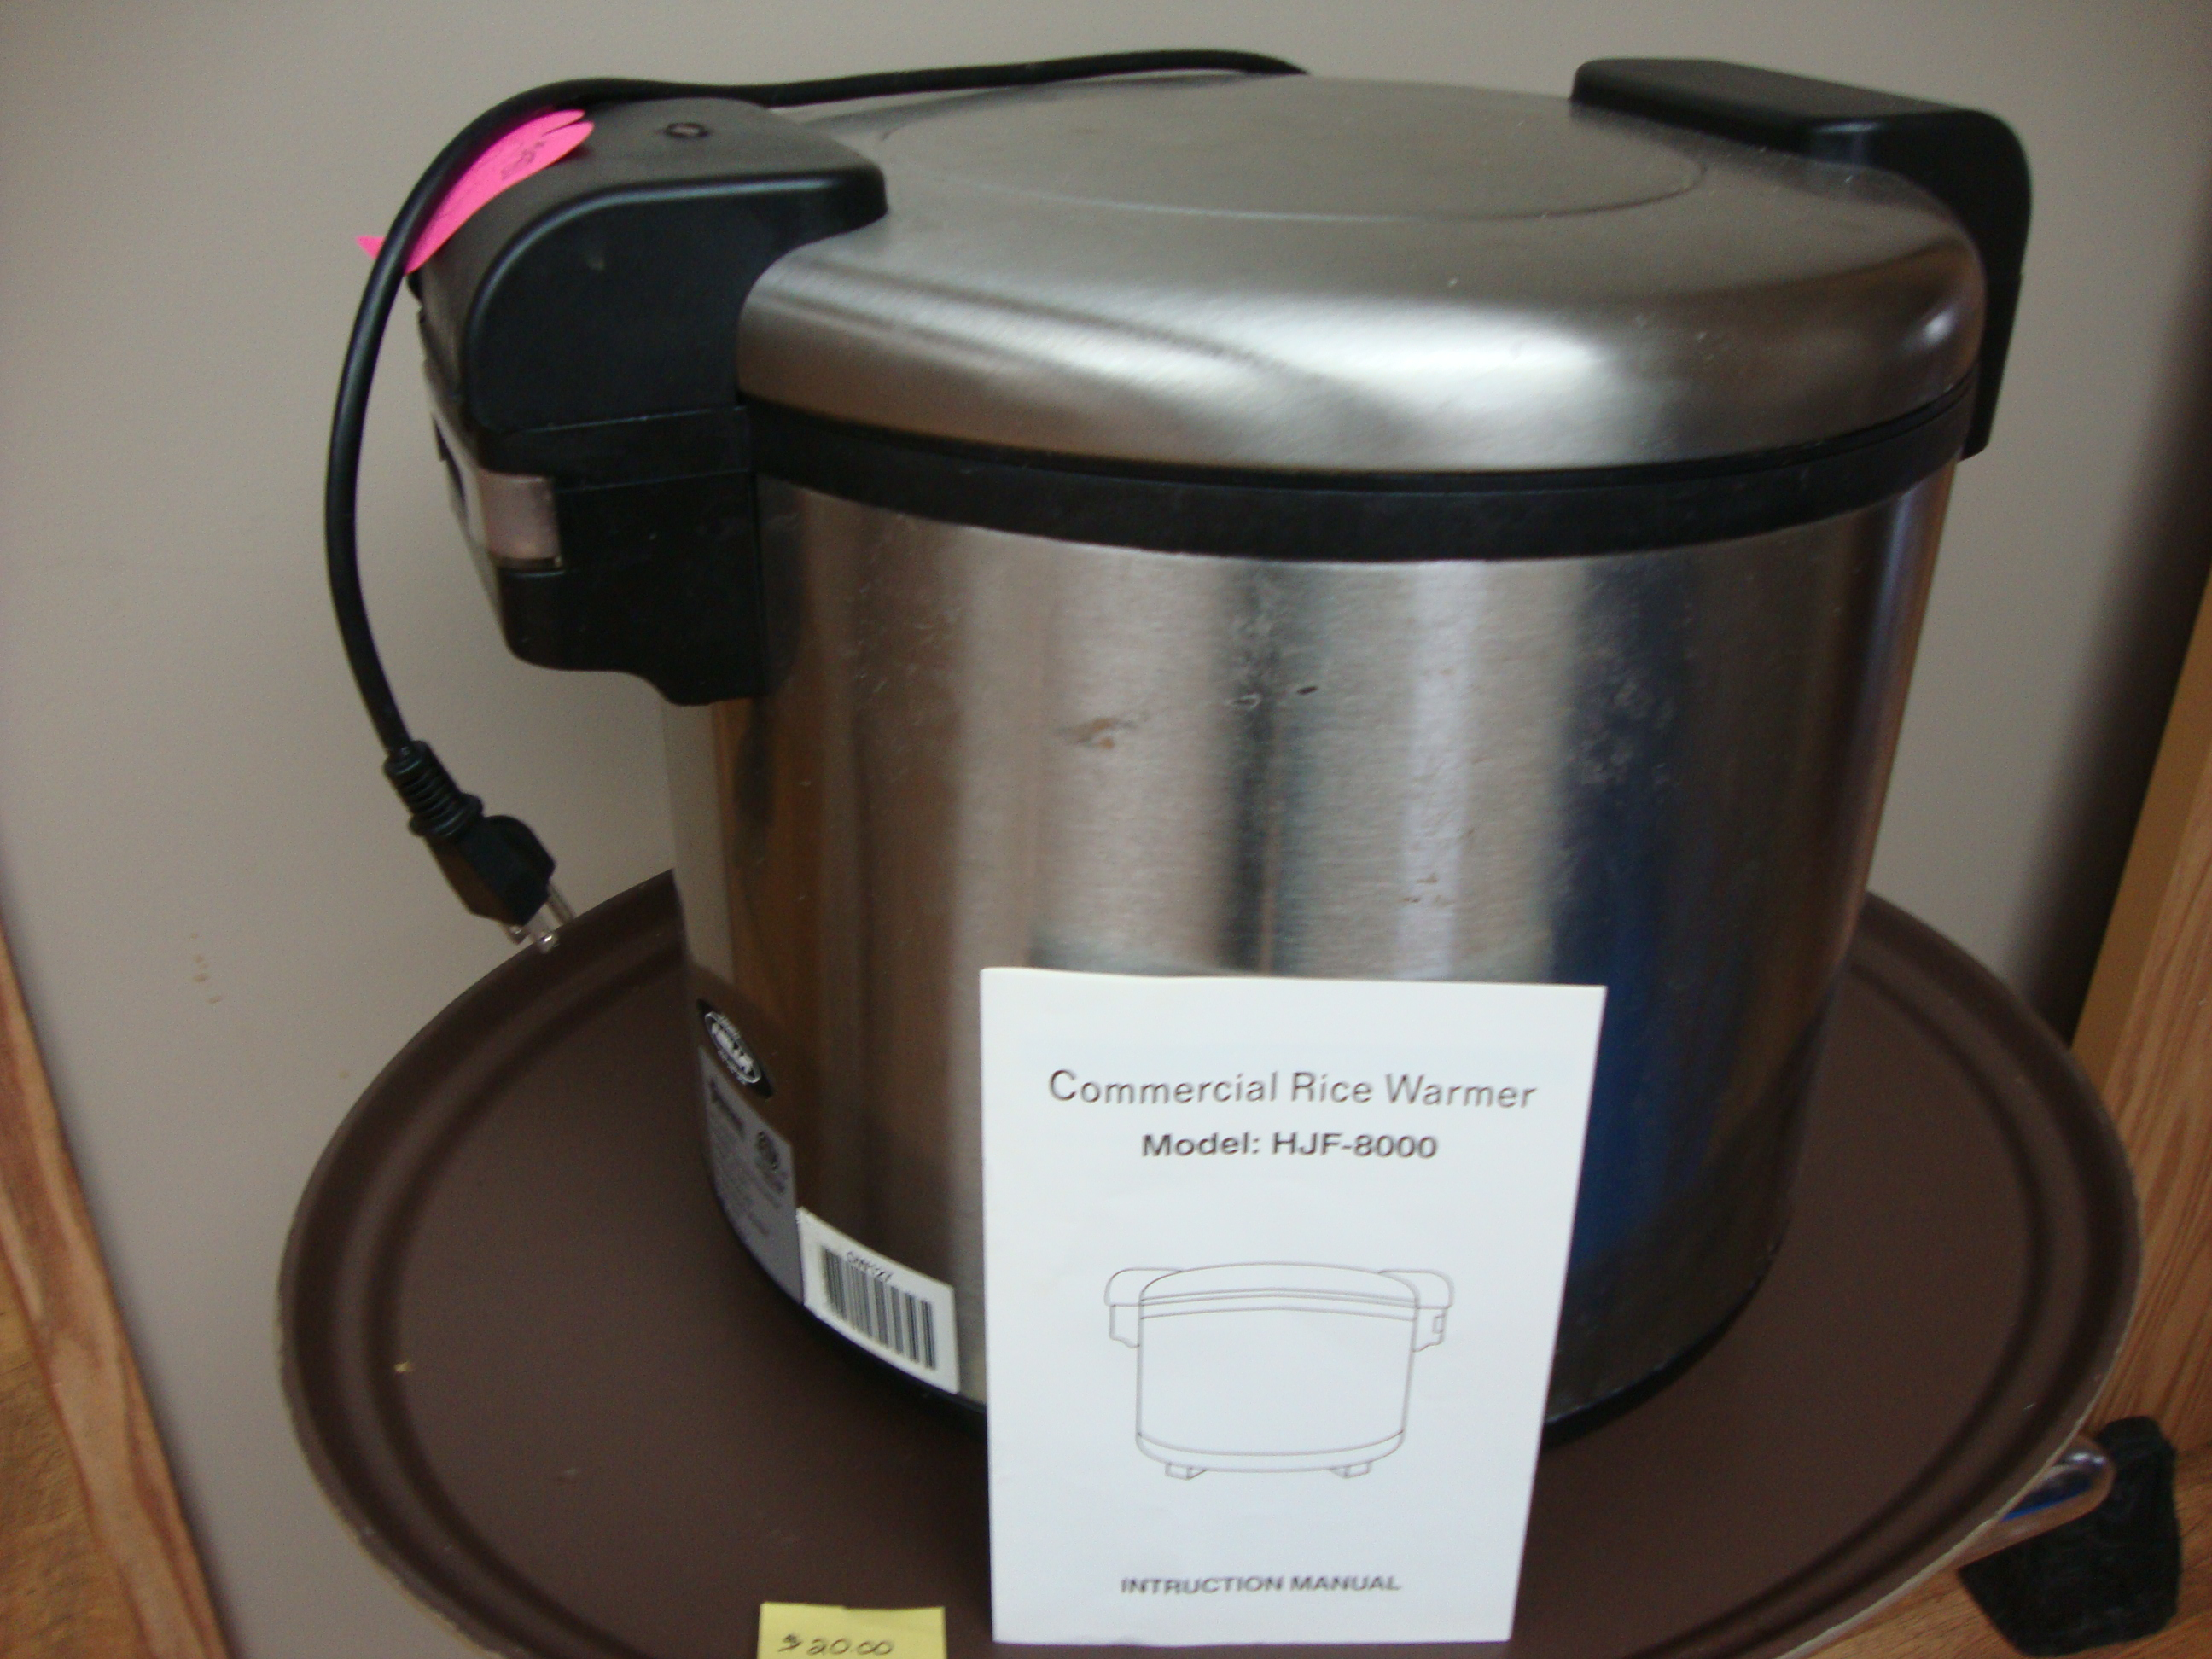 Commercial Rice Warmer